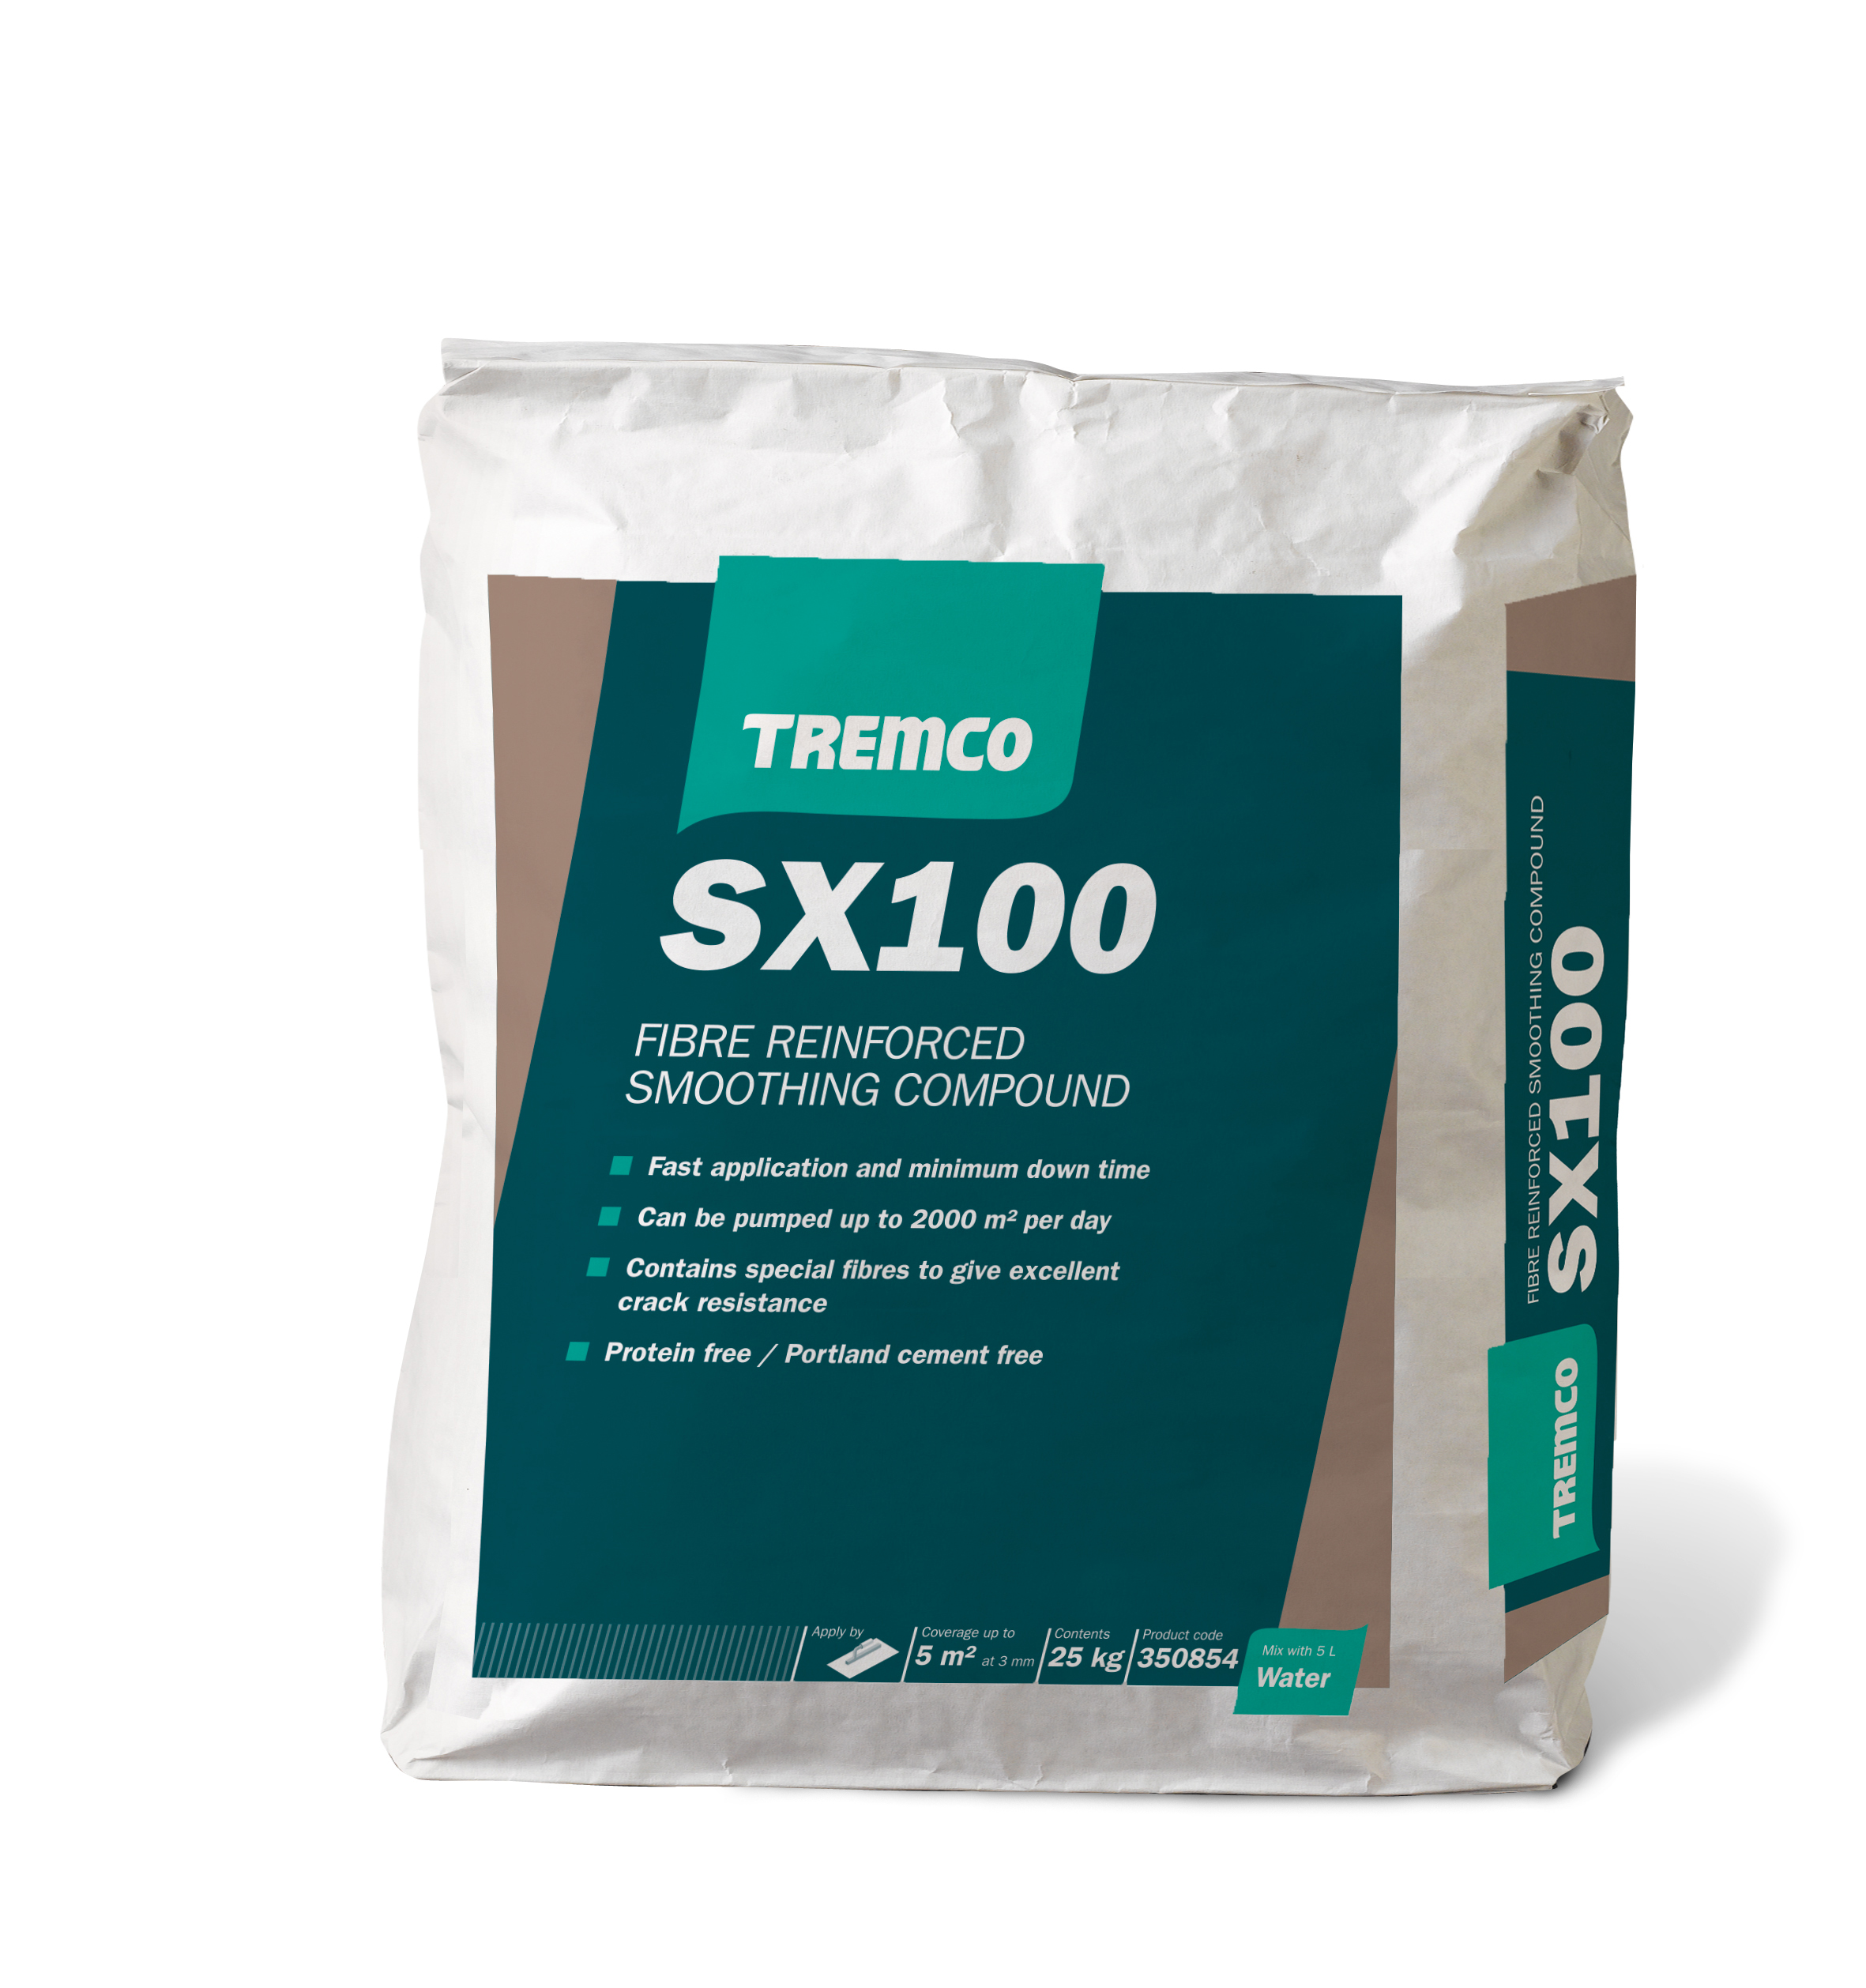 Tremco Product Finder